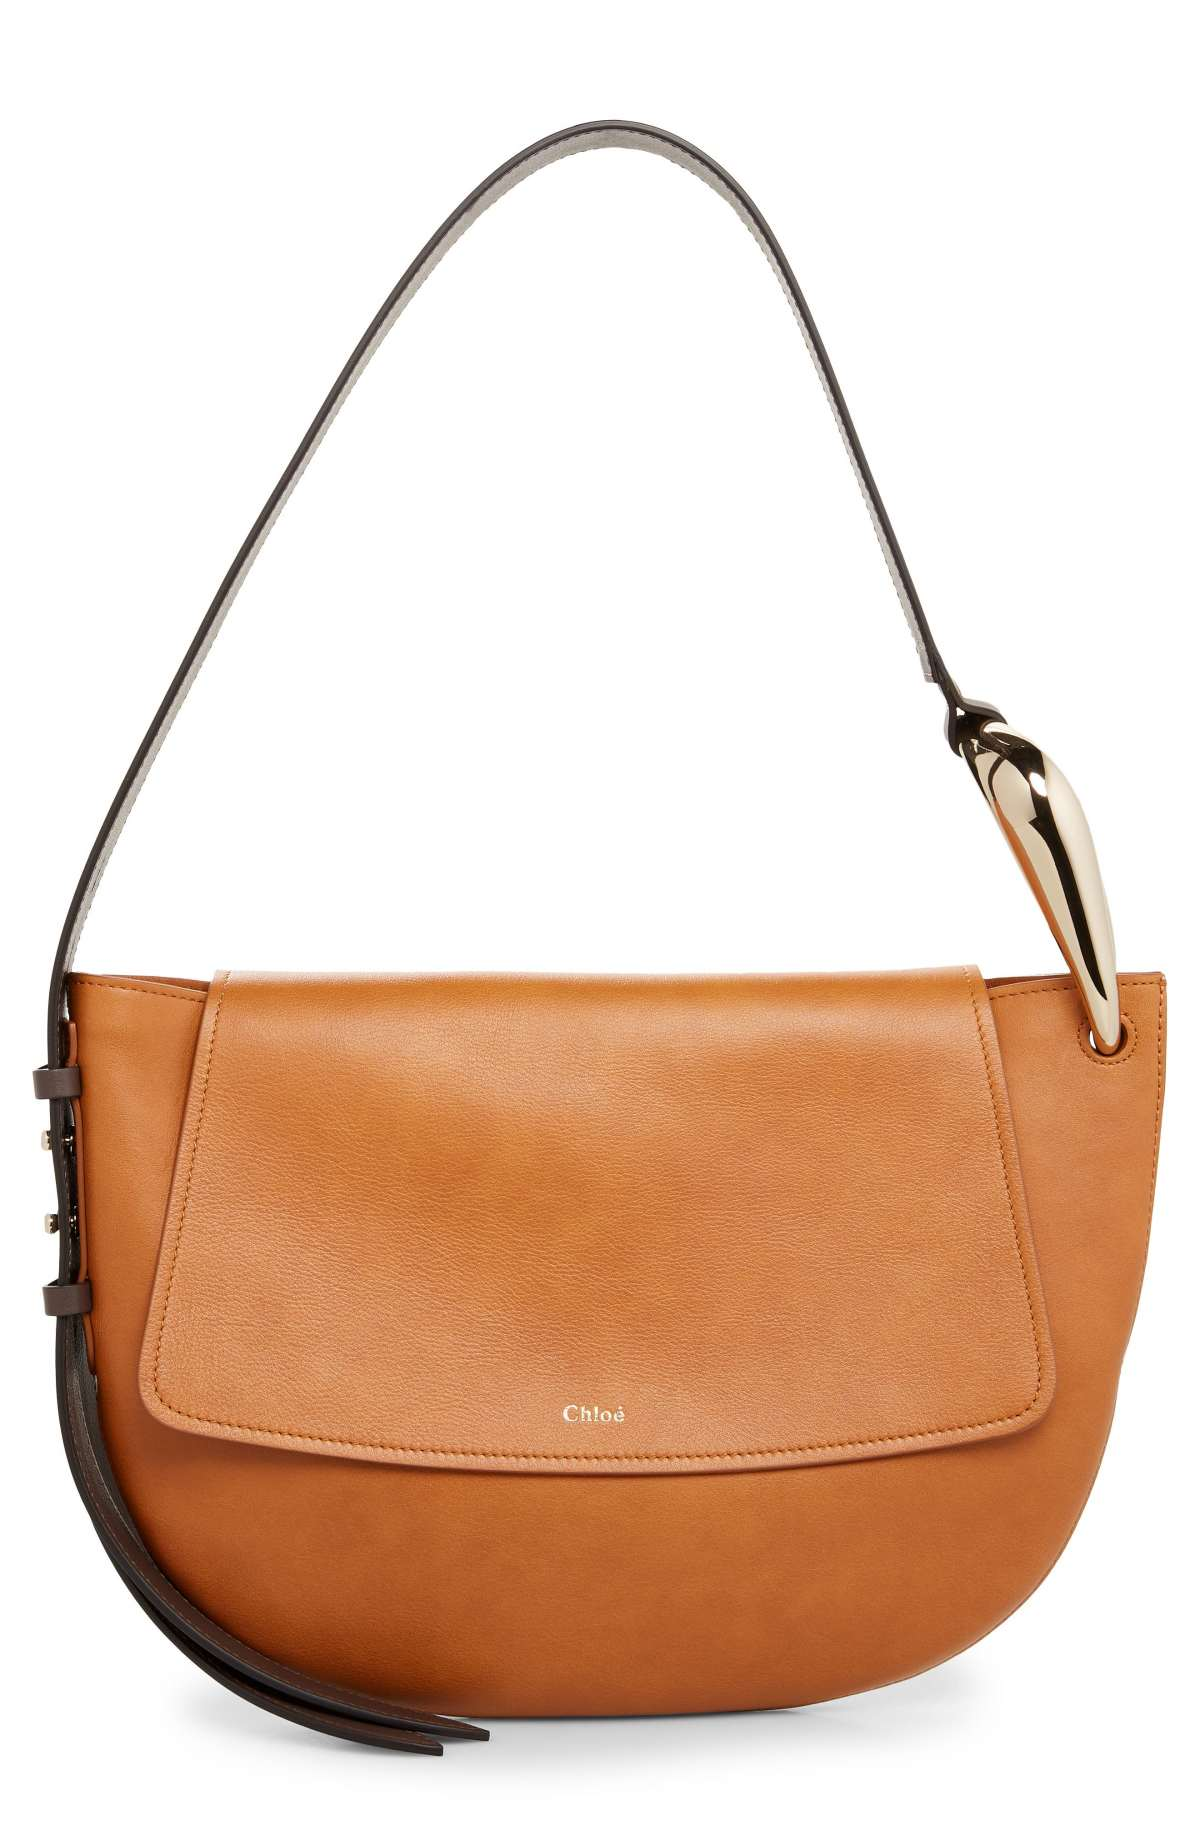 Kiss Leather Hobo by CHLOÉ, available on nordstrom.com for $1750 Kendall Jenner Bags Exact Product